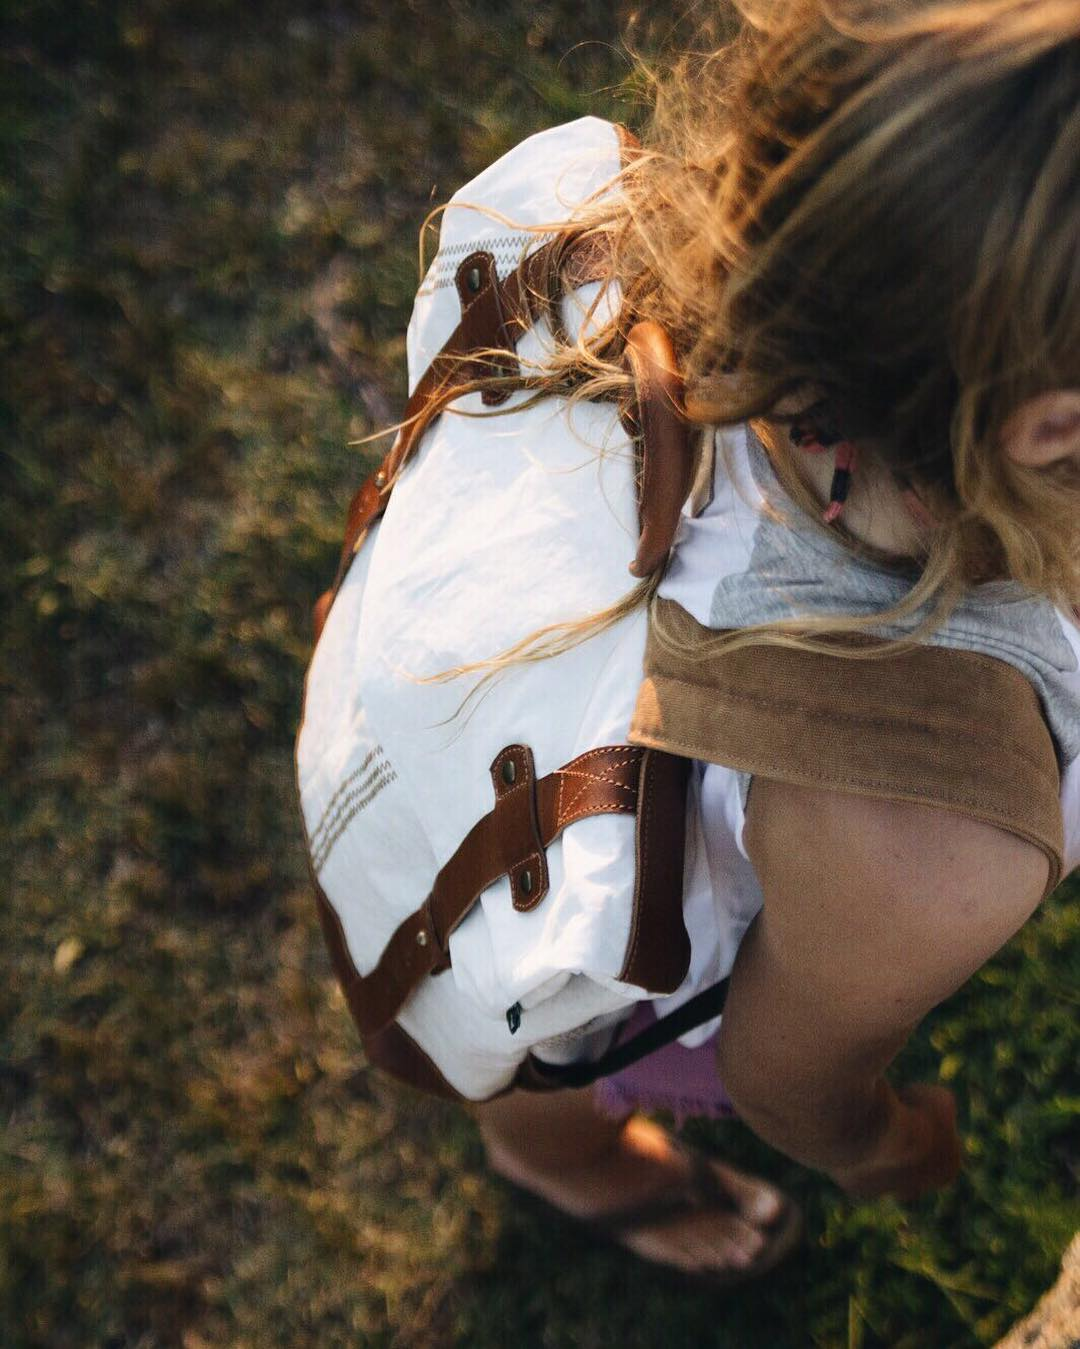 The golden hour.  Redwood Sailors: Mochila fabricada con velas de barco recicladas y cuero natural de curtido vegetal /// Backpack made with repurposed sails and vegetable tanned natural leather.  Shop